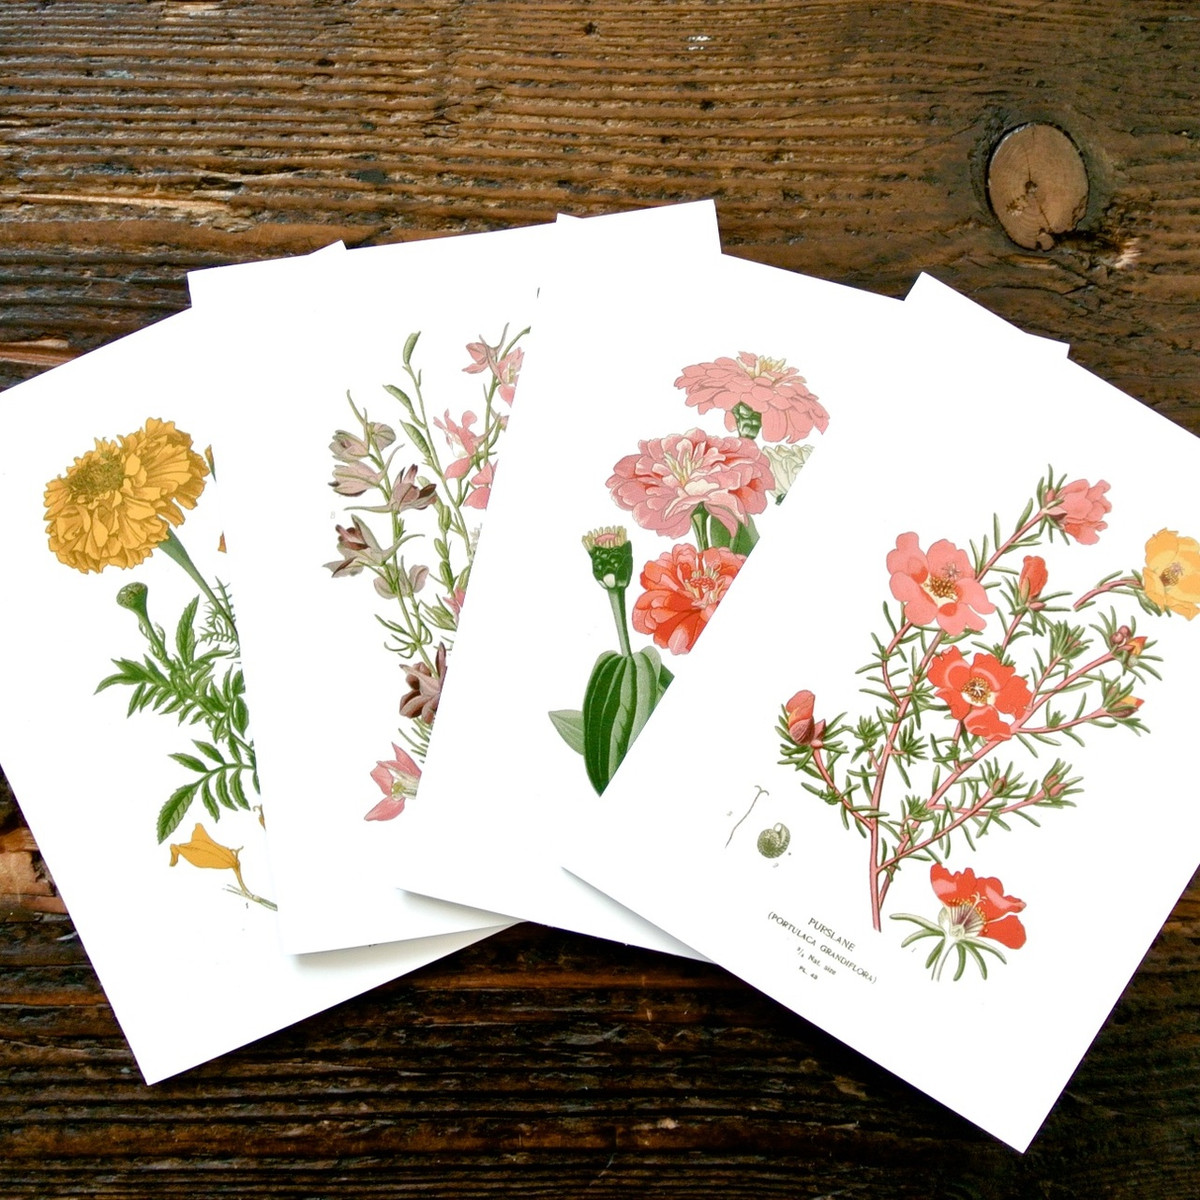 Botanical greeting cards set of 4 seattle seed company botanical greeting cards set of 4 m4hsunfo Gallery